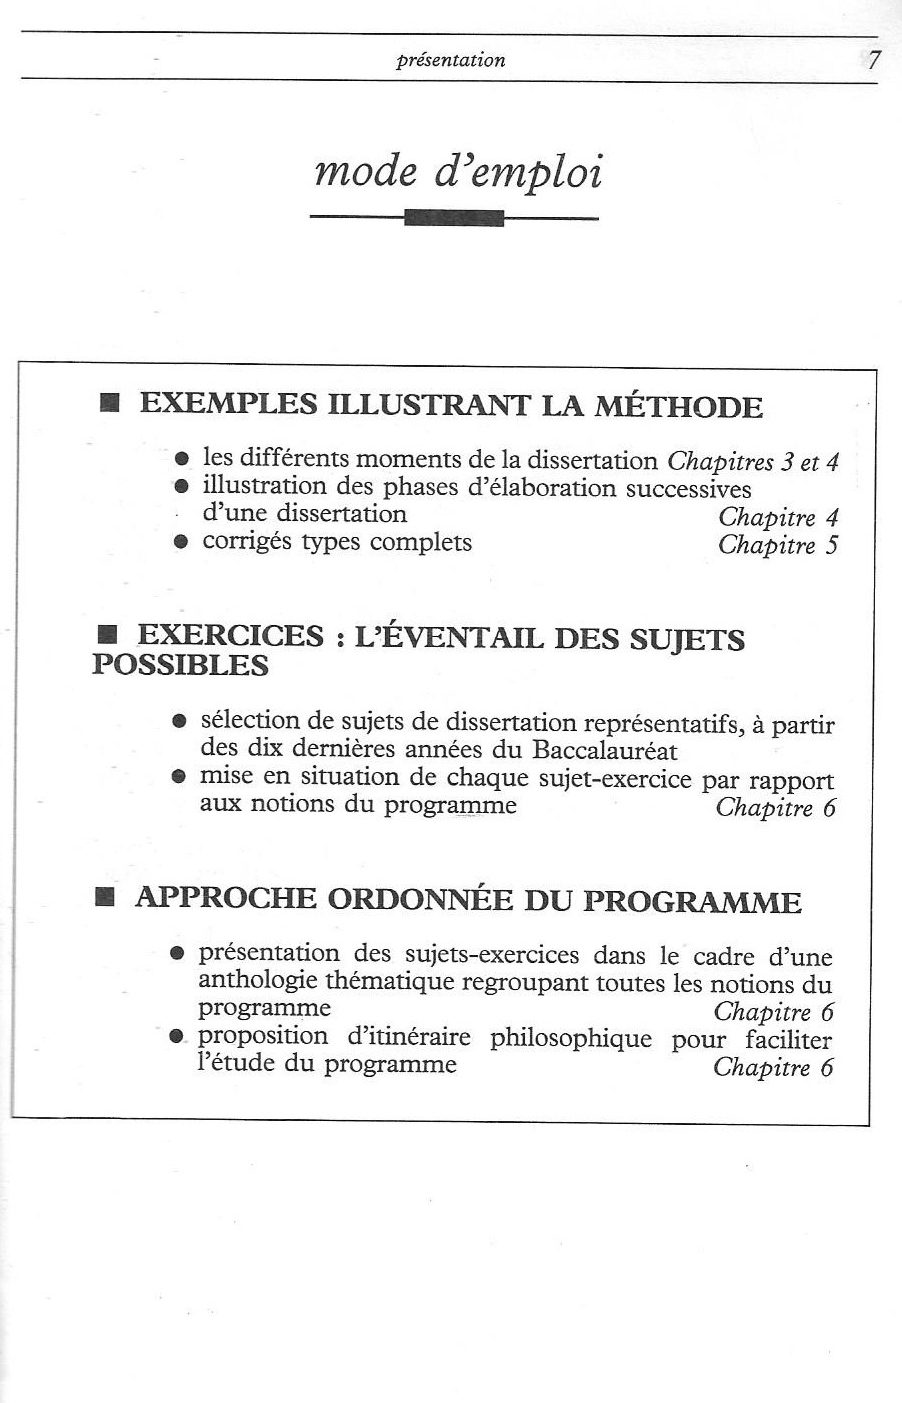 Composition dissertation philosophie